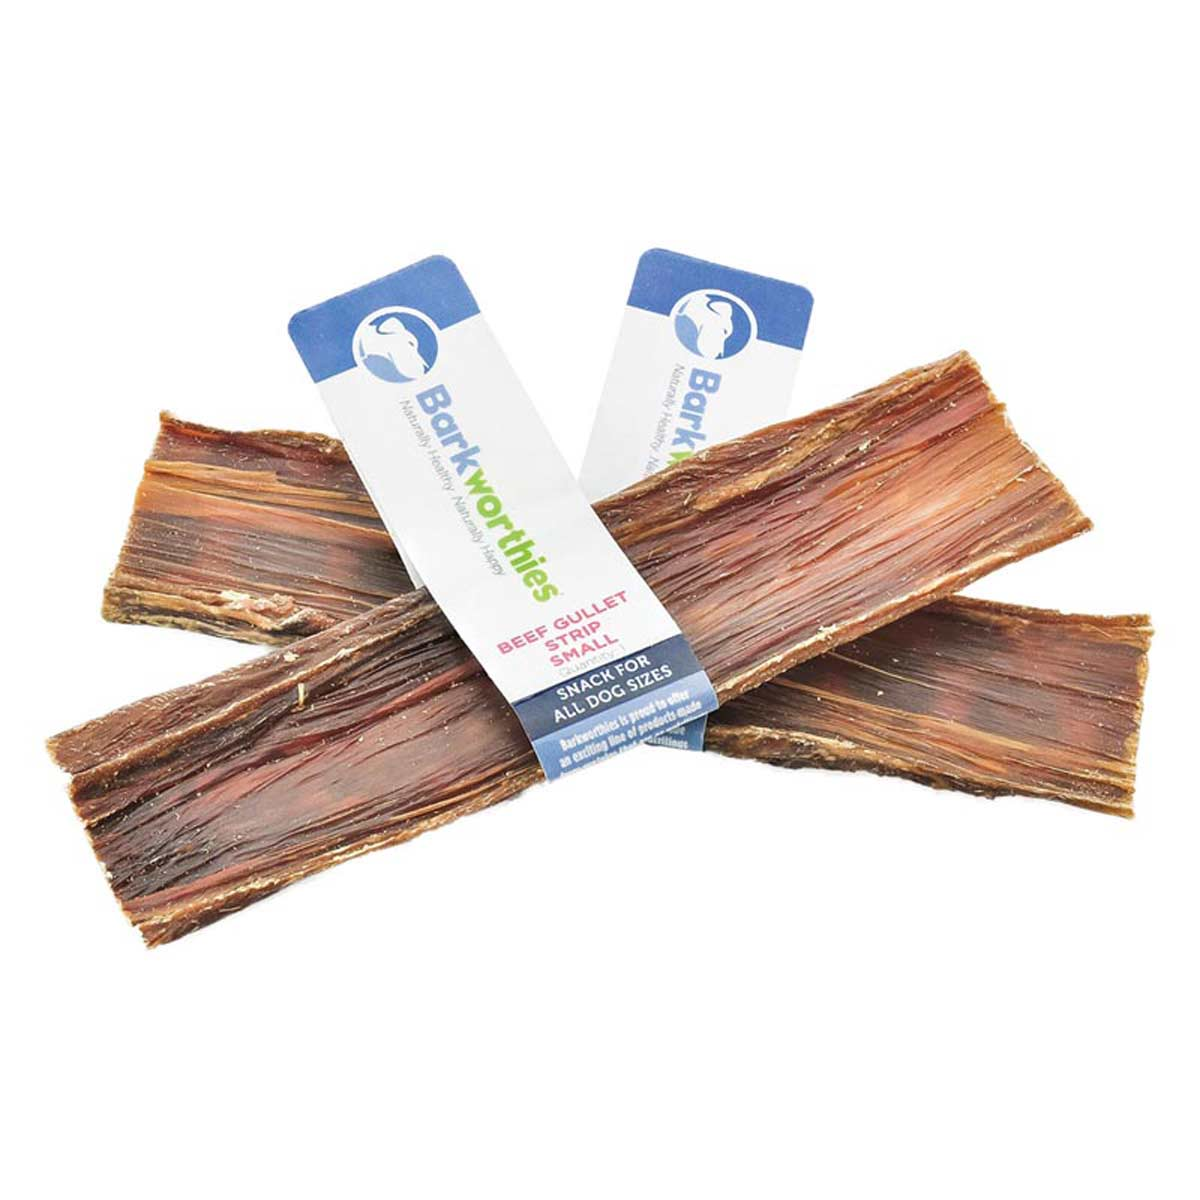 Natural Barkworthies Beef Gullet Small Strips Treats for Dogs